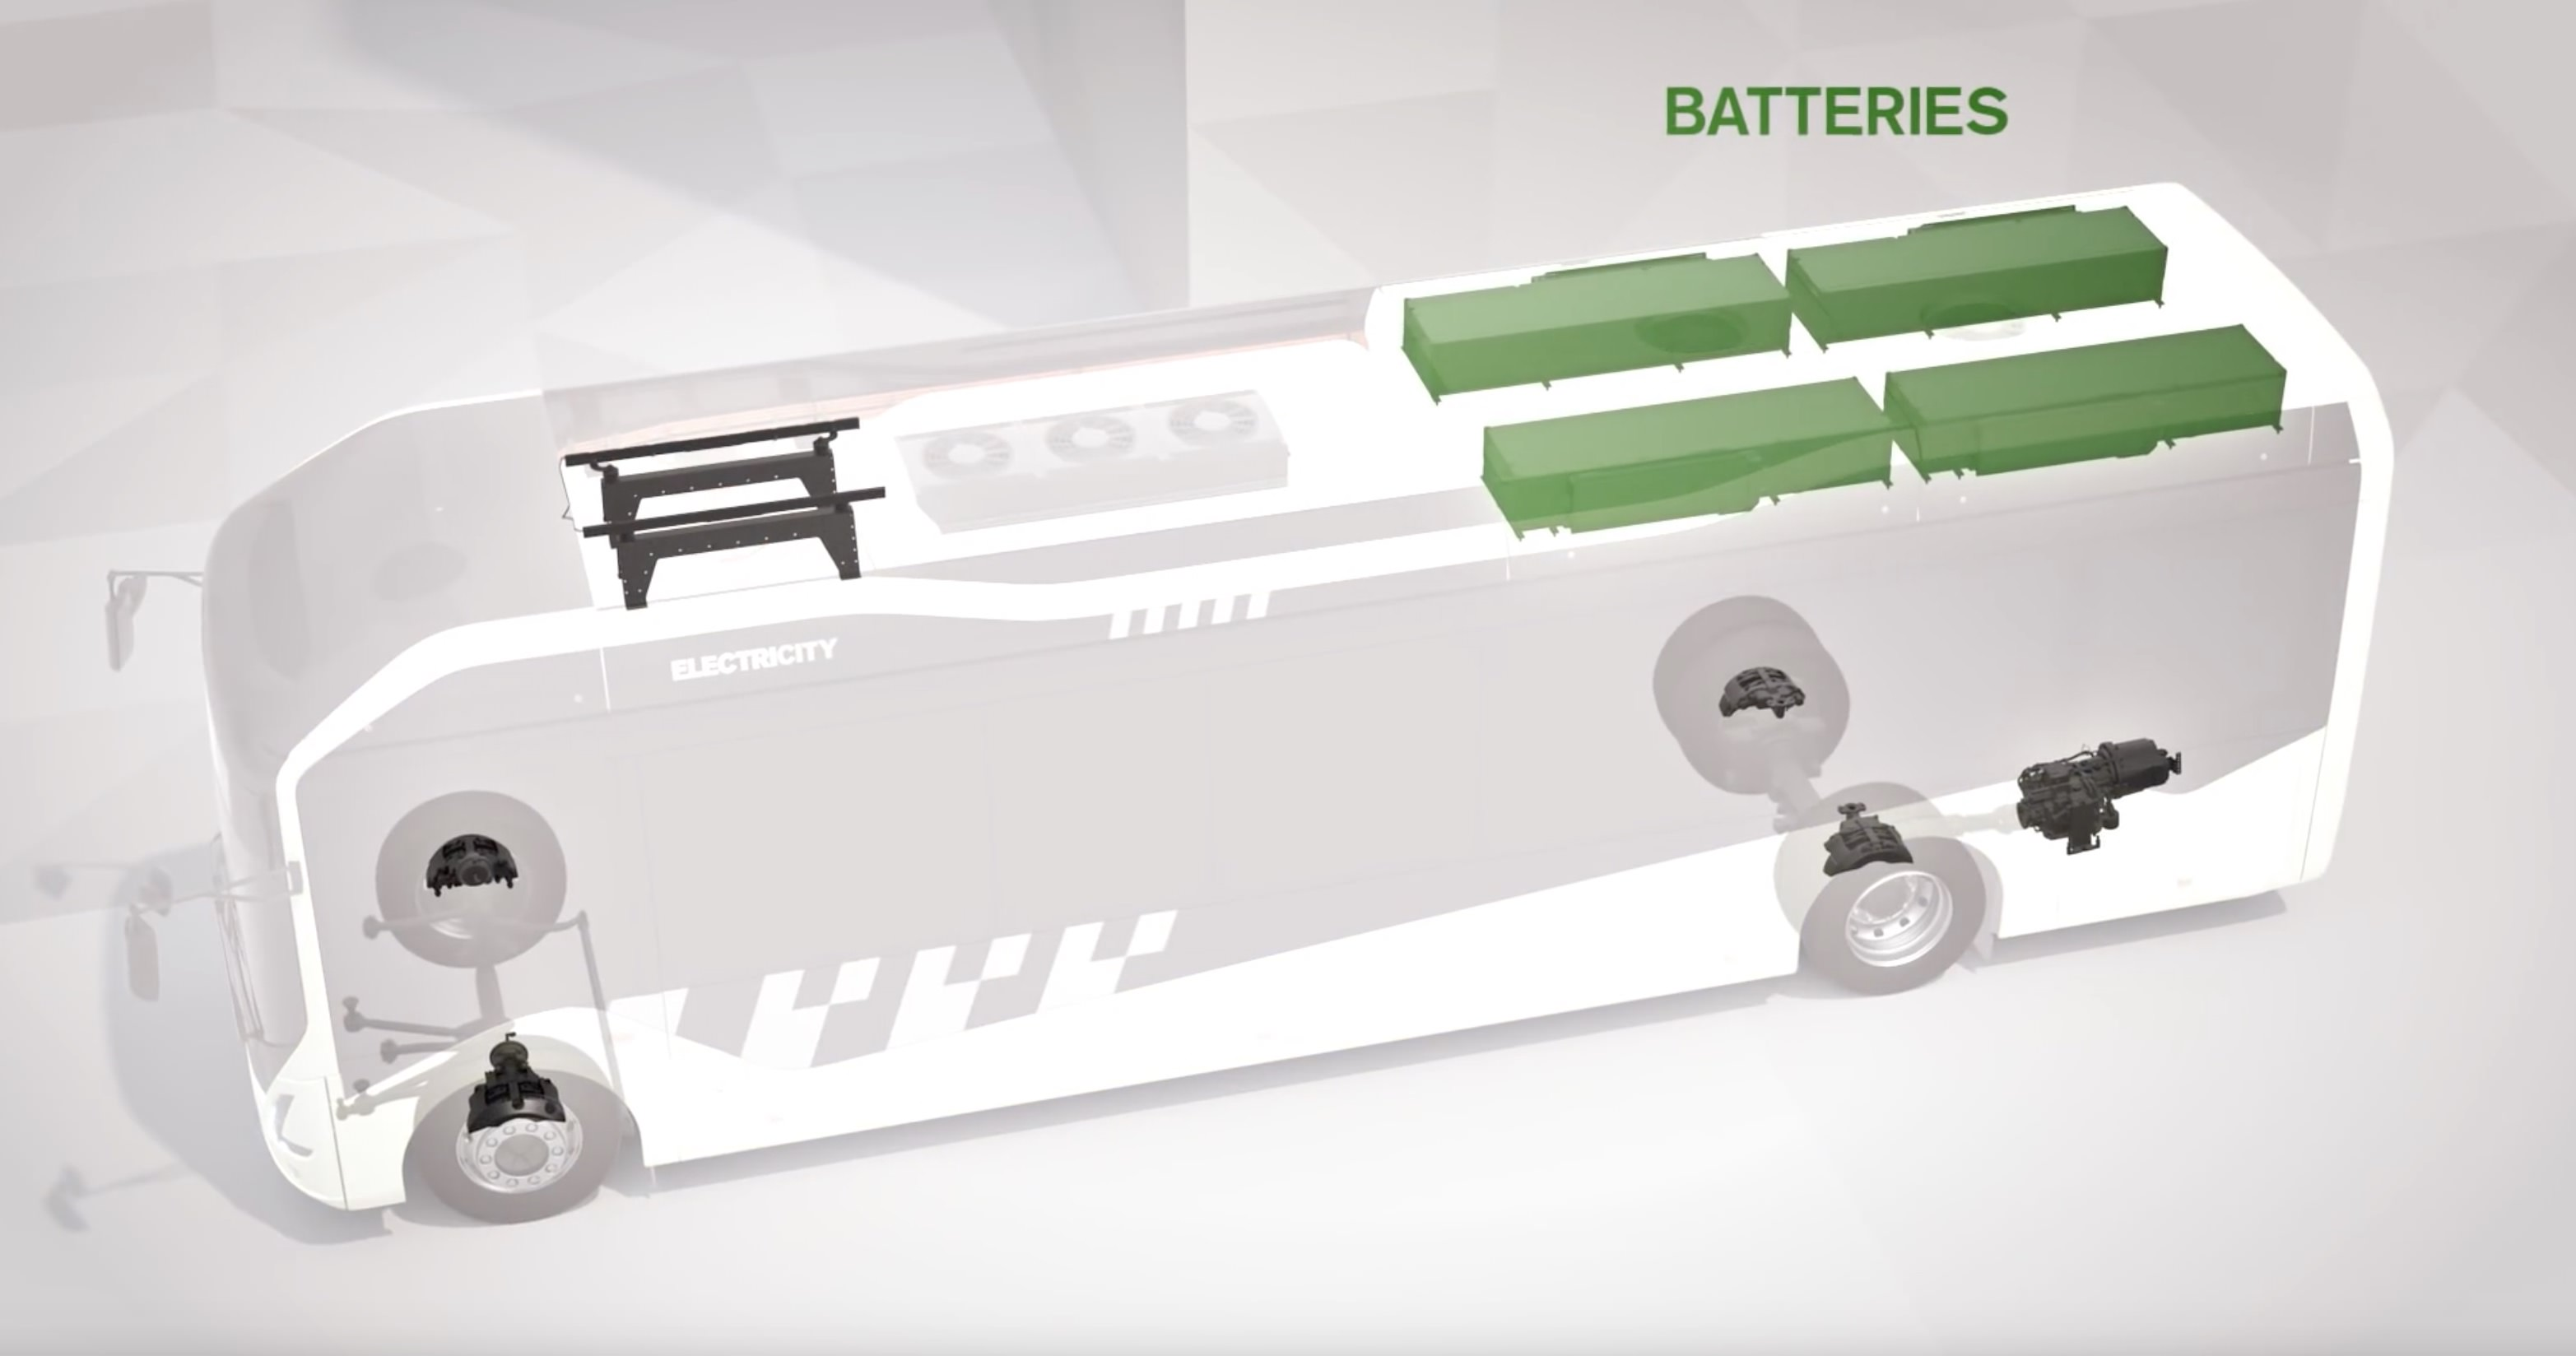 4 High capacity 19kWh Lithium-Ion batteries on Volvo 7900 electric bus